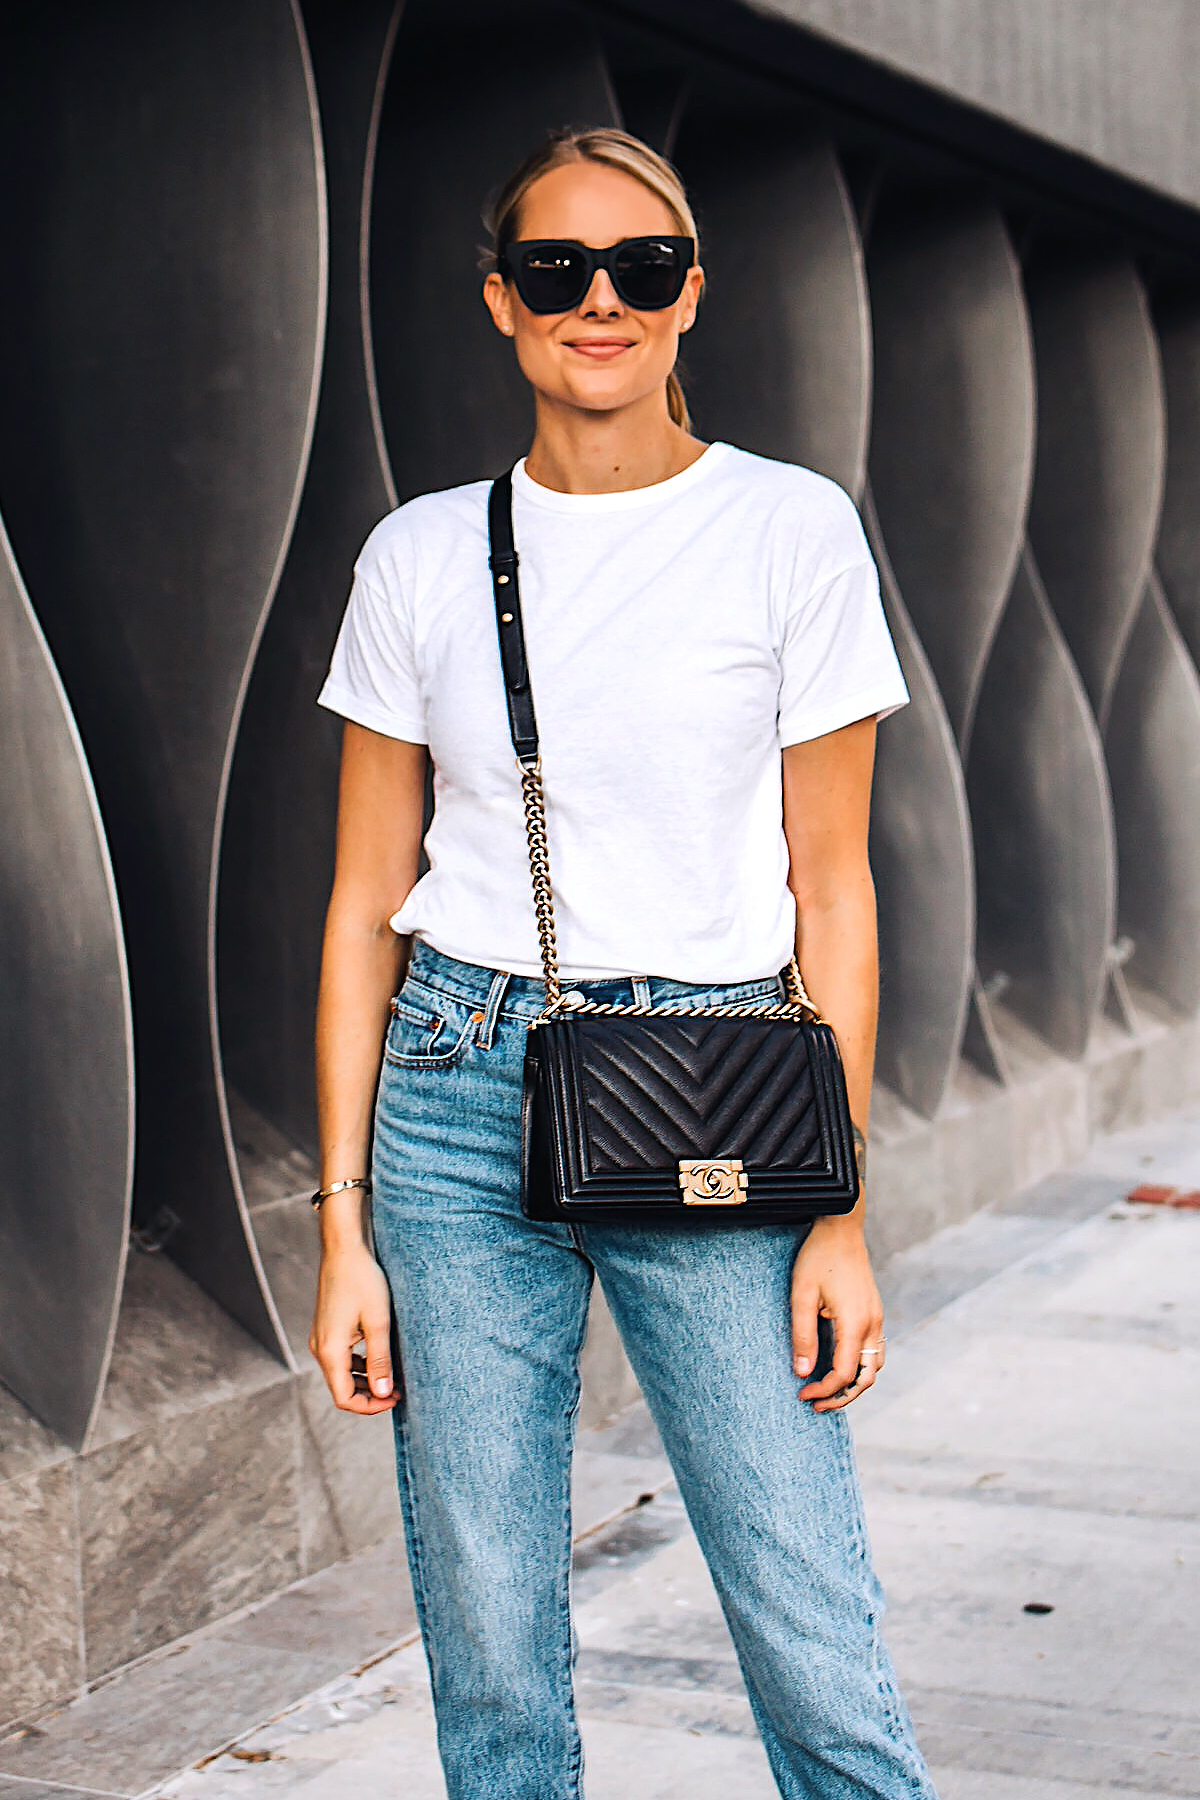 Blonde Woman Wearing Fashion Jackson White Tshirt Levis Wedgie Jeans Chanel Black Boy Bag Fashion Jackson San Diego Blogger Fashion Blogger Street Style